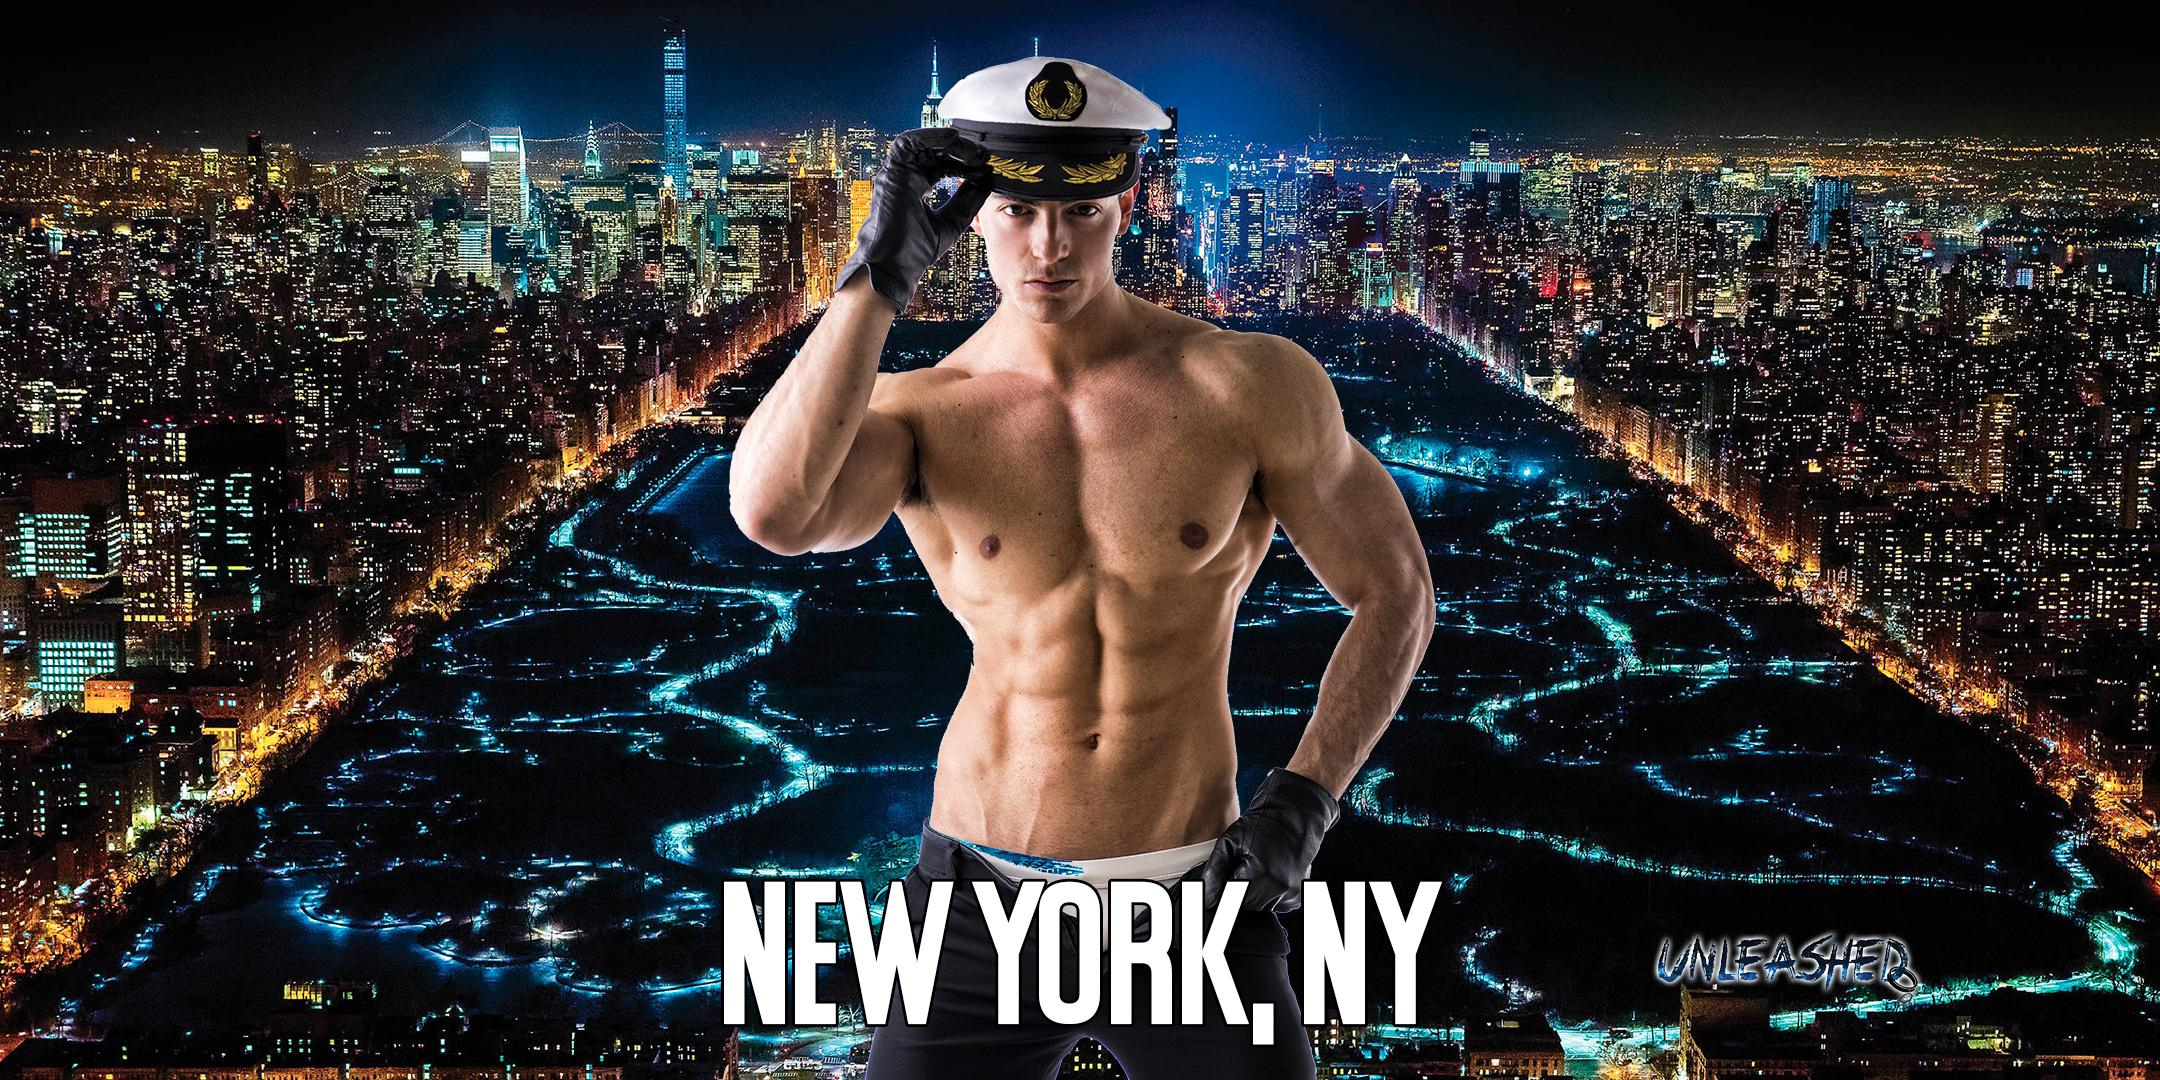 Male Strippers UNLEASHED Male Revue New York City NY 9-11PM